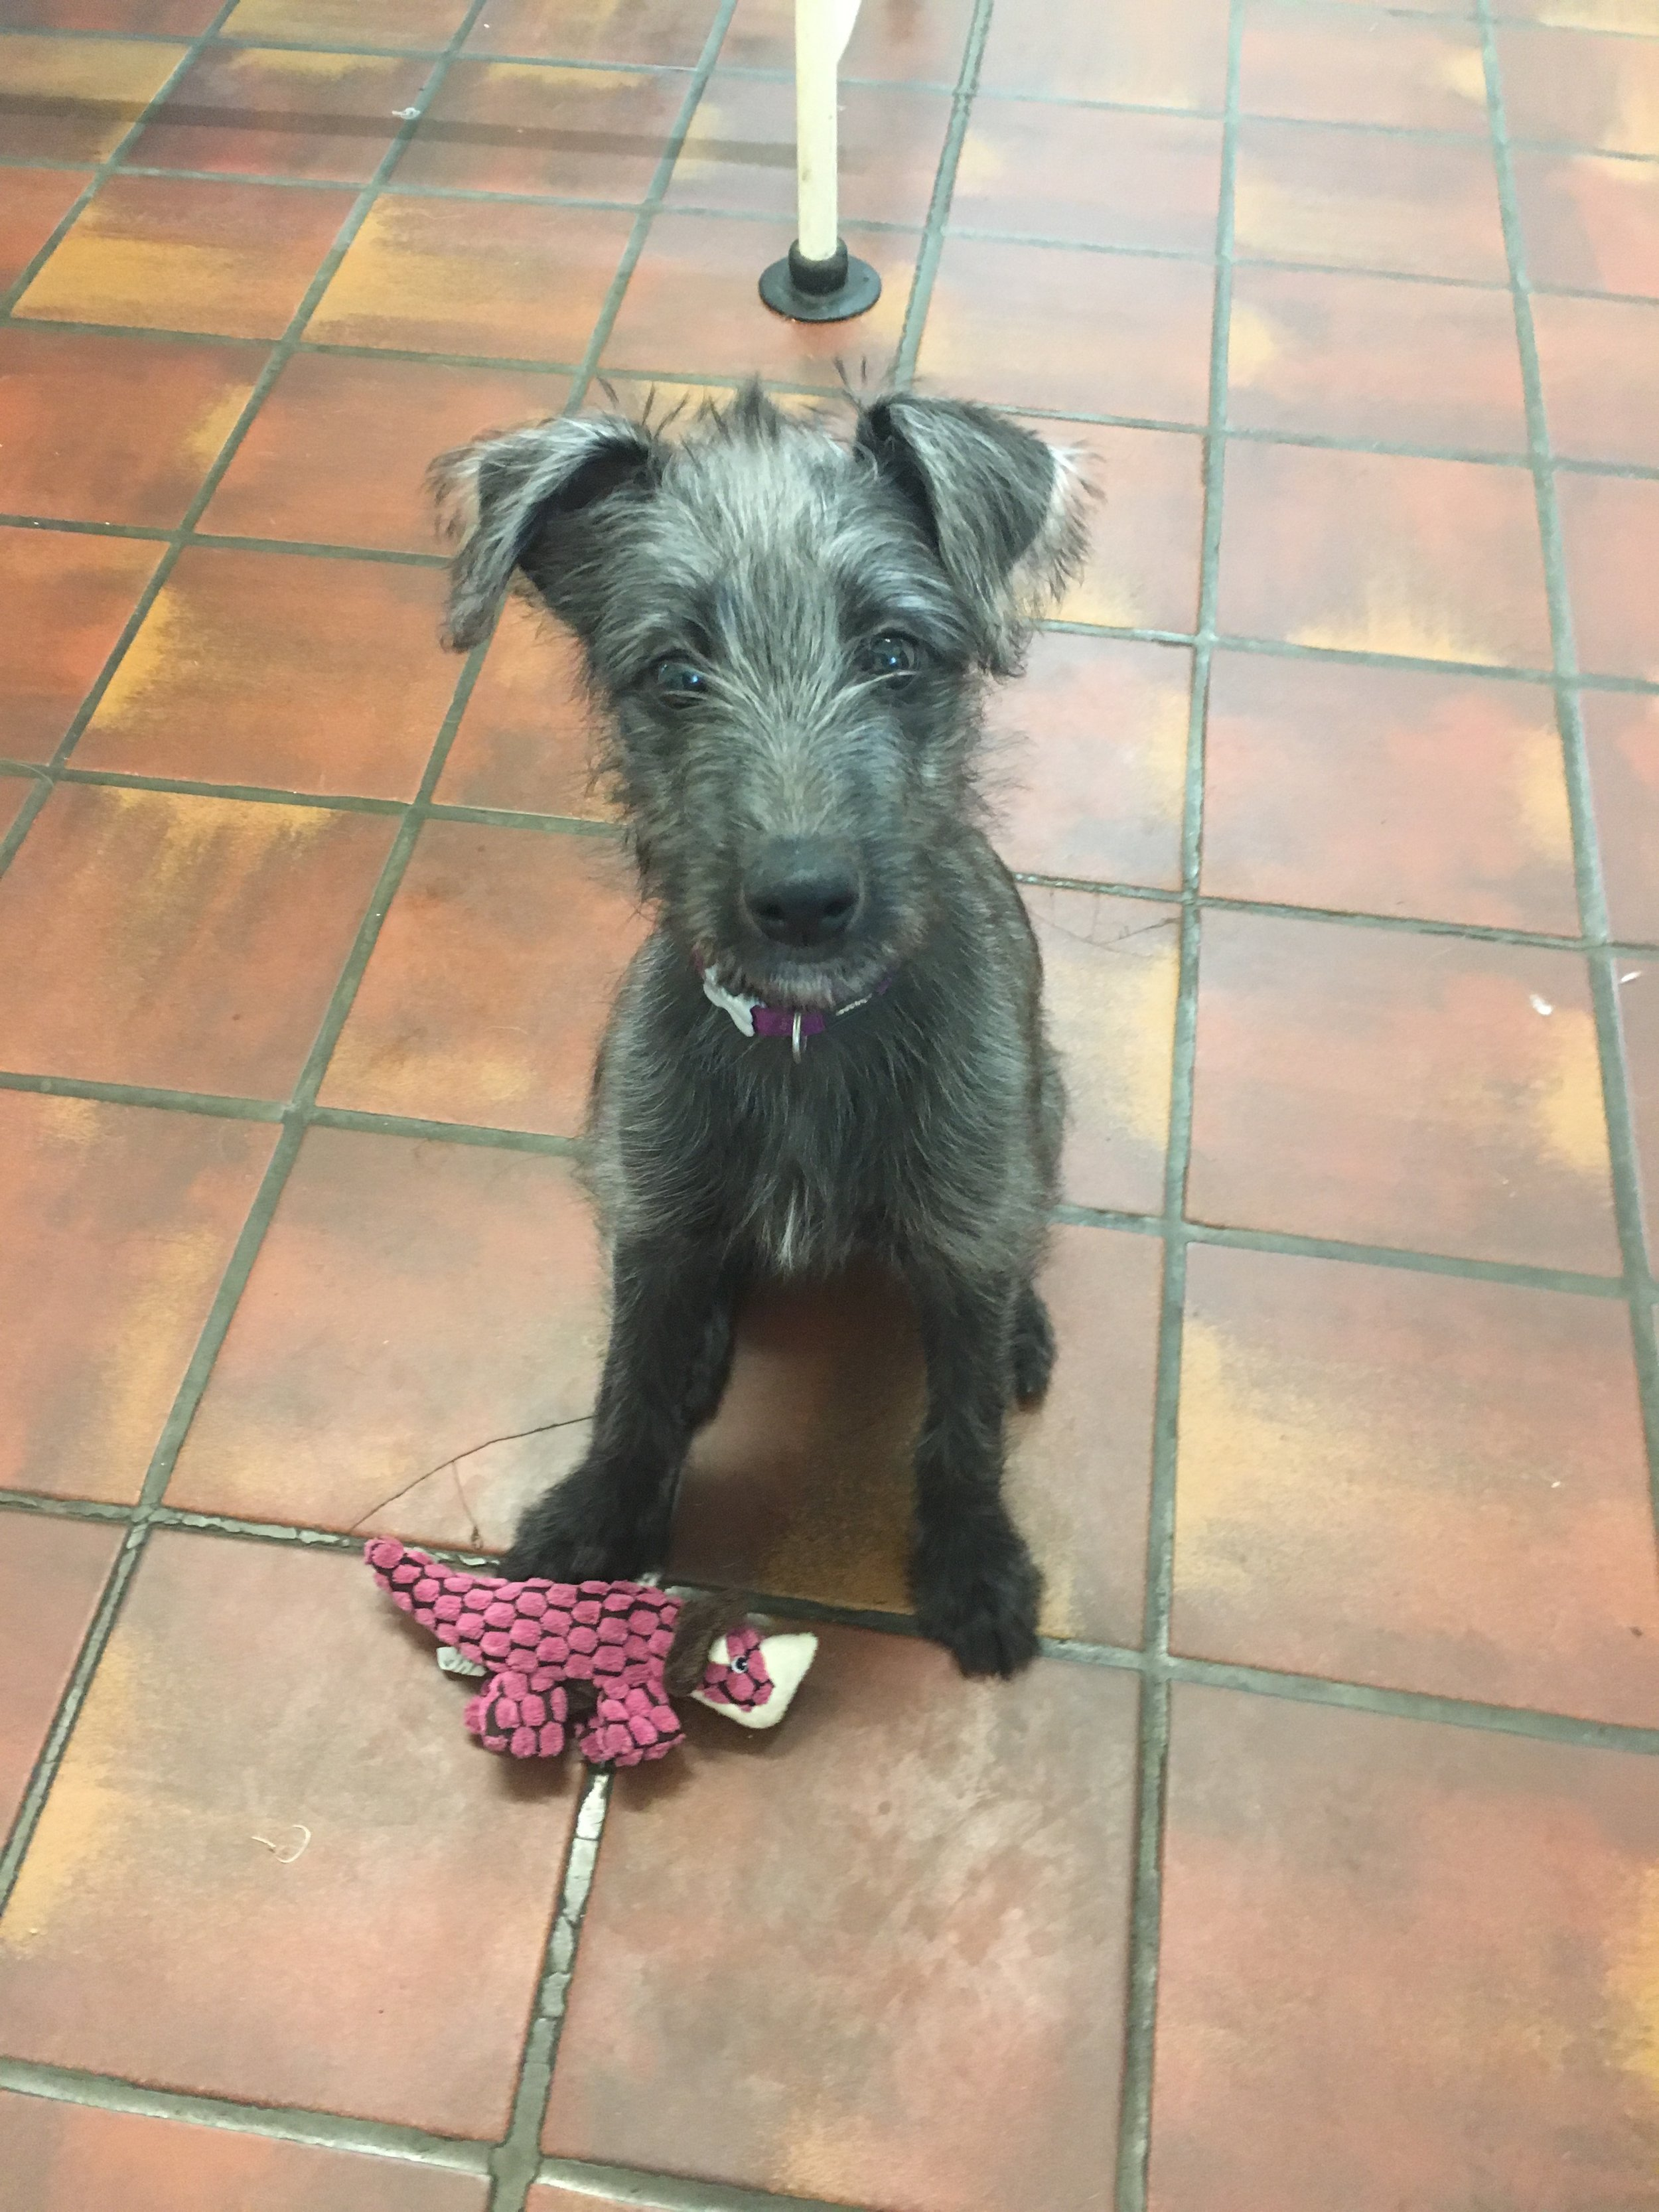 Cobweb belongs to head vet Maggie, and spends the majority of her time here with us at the practice. She is a lurcher and was born in May 2016. Cobweb is a cheeky puppy, and always keeps the nurses busy wanting playtime and cuddles! Here she is pictured with her favorite dinosaur toy.